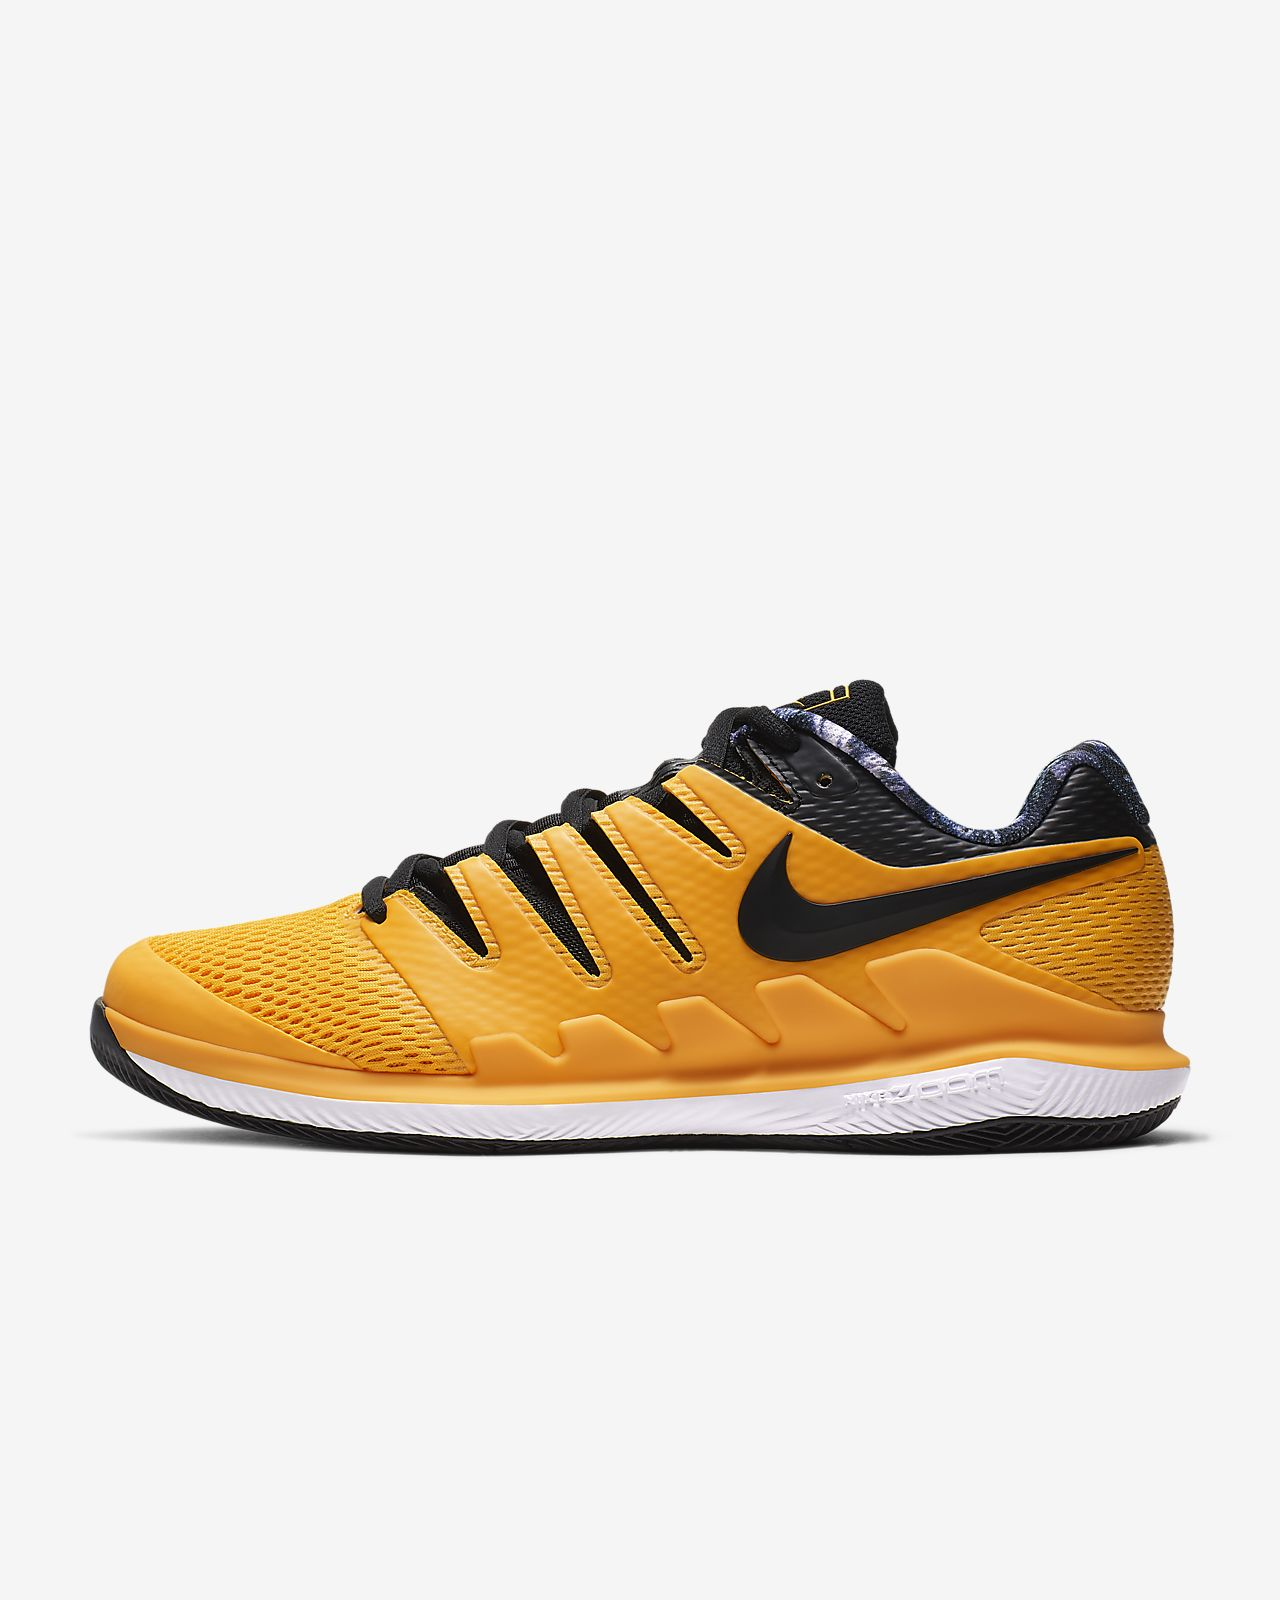 new style 4816b 1be74 Men s Hard Court Tennis Shoe. NikeCourt Air Zoom Vapor X